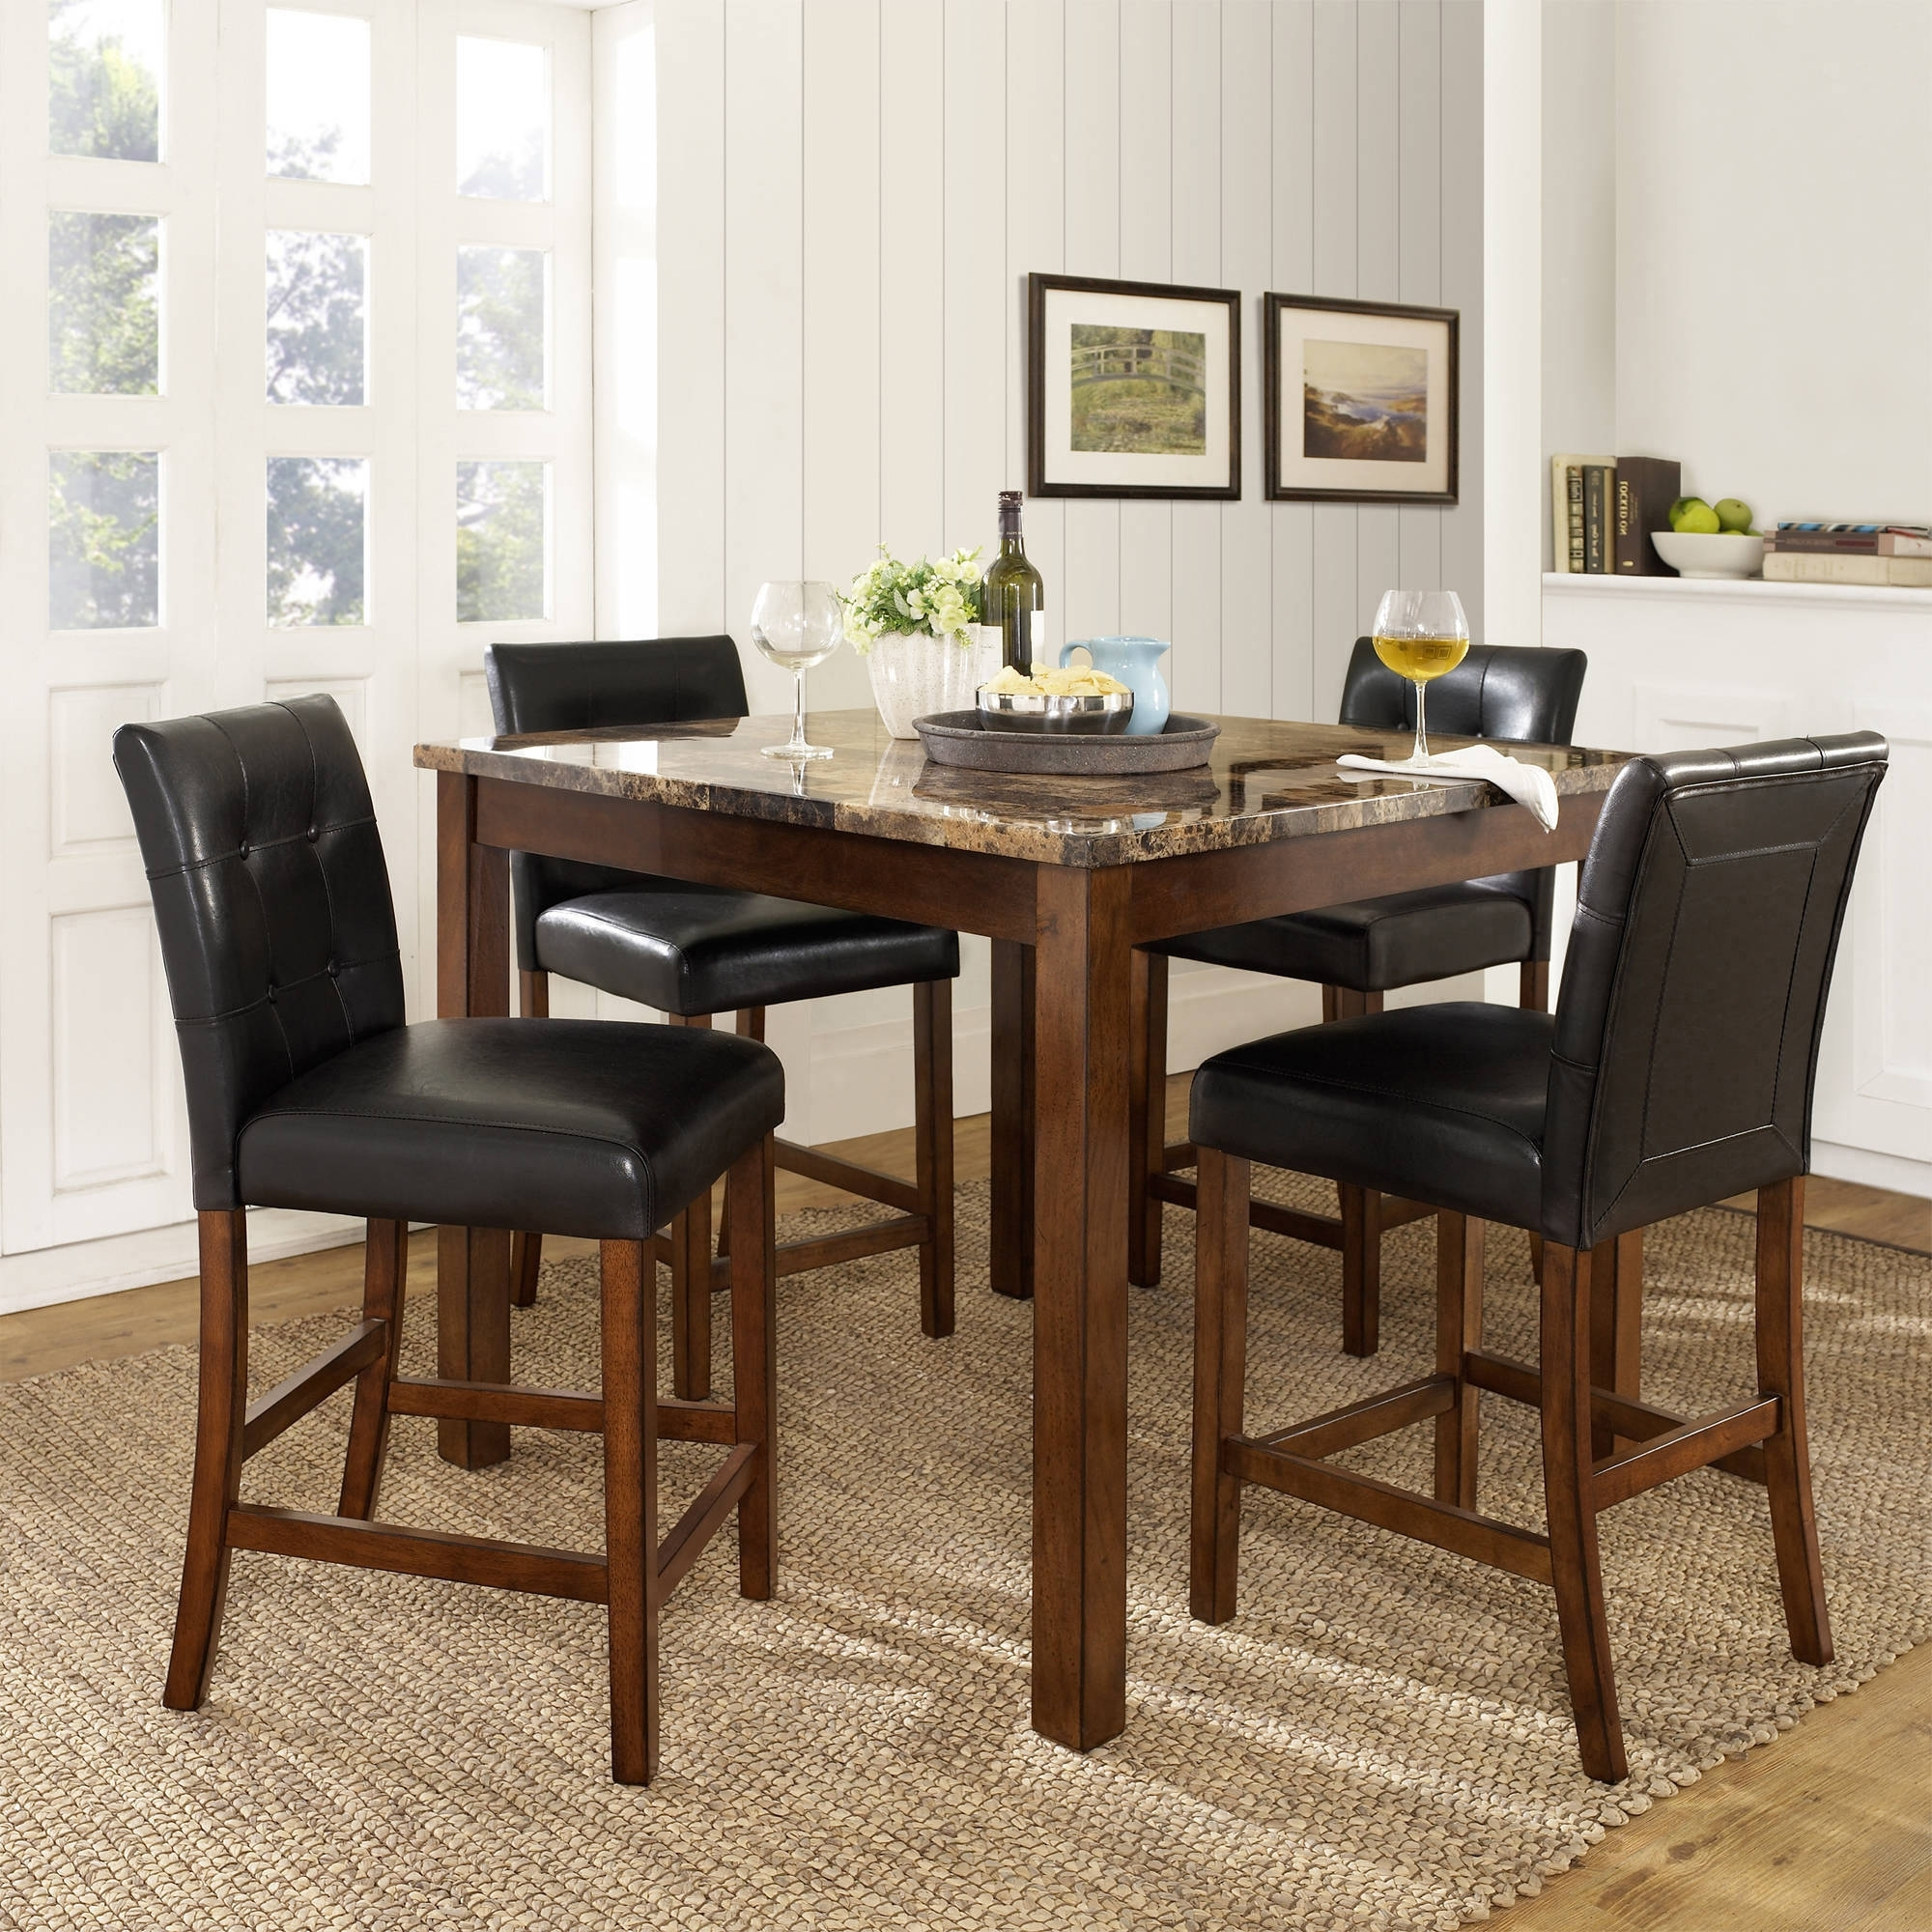 "Famous Mainstays 5 Piece Glass And Metal Dining Set, 42"" Round Tabletop Inside Cheap Dining Tables Sets (View 3 of 25)"